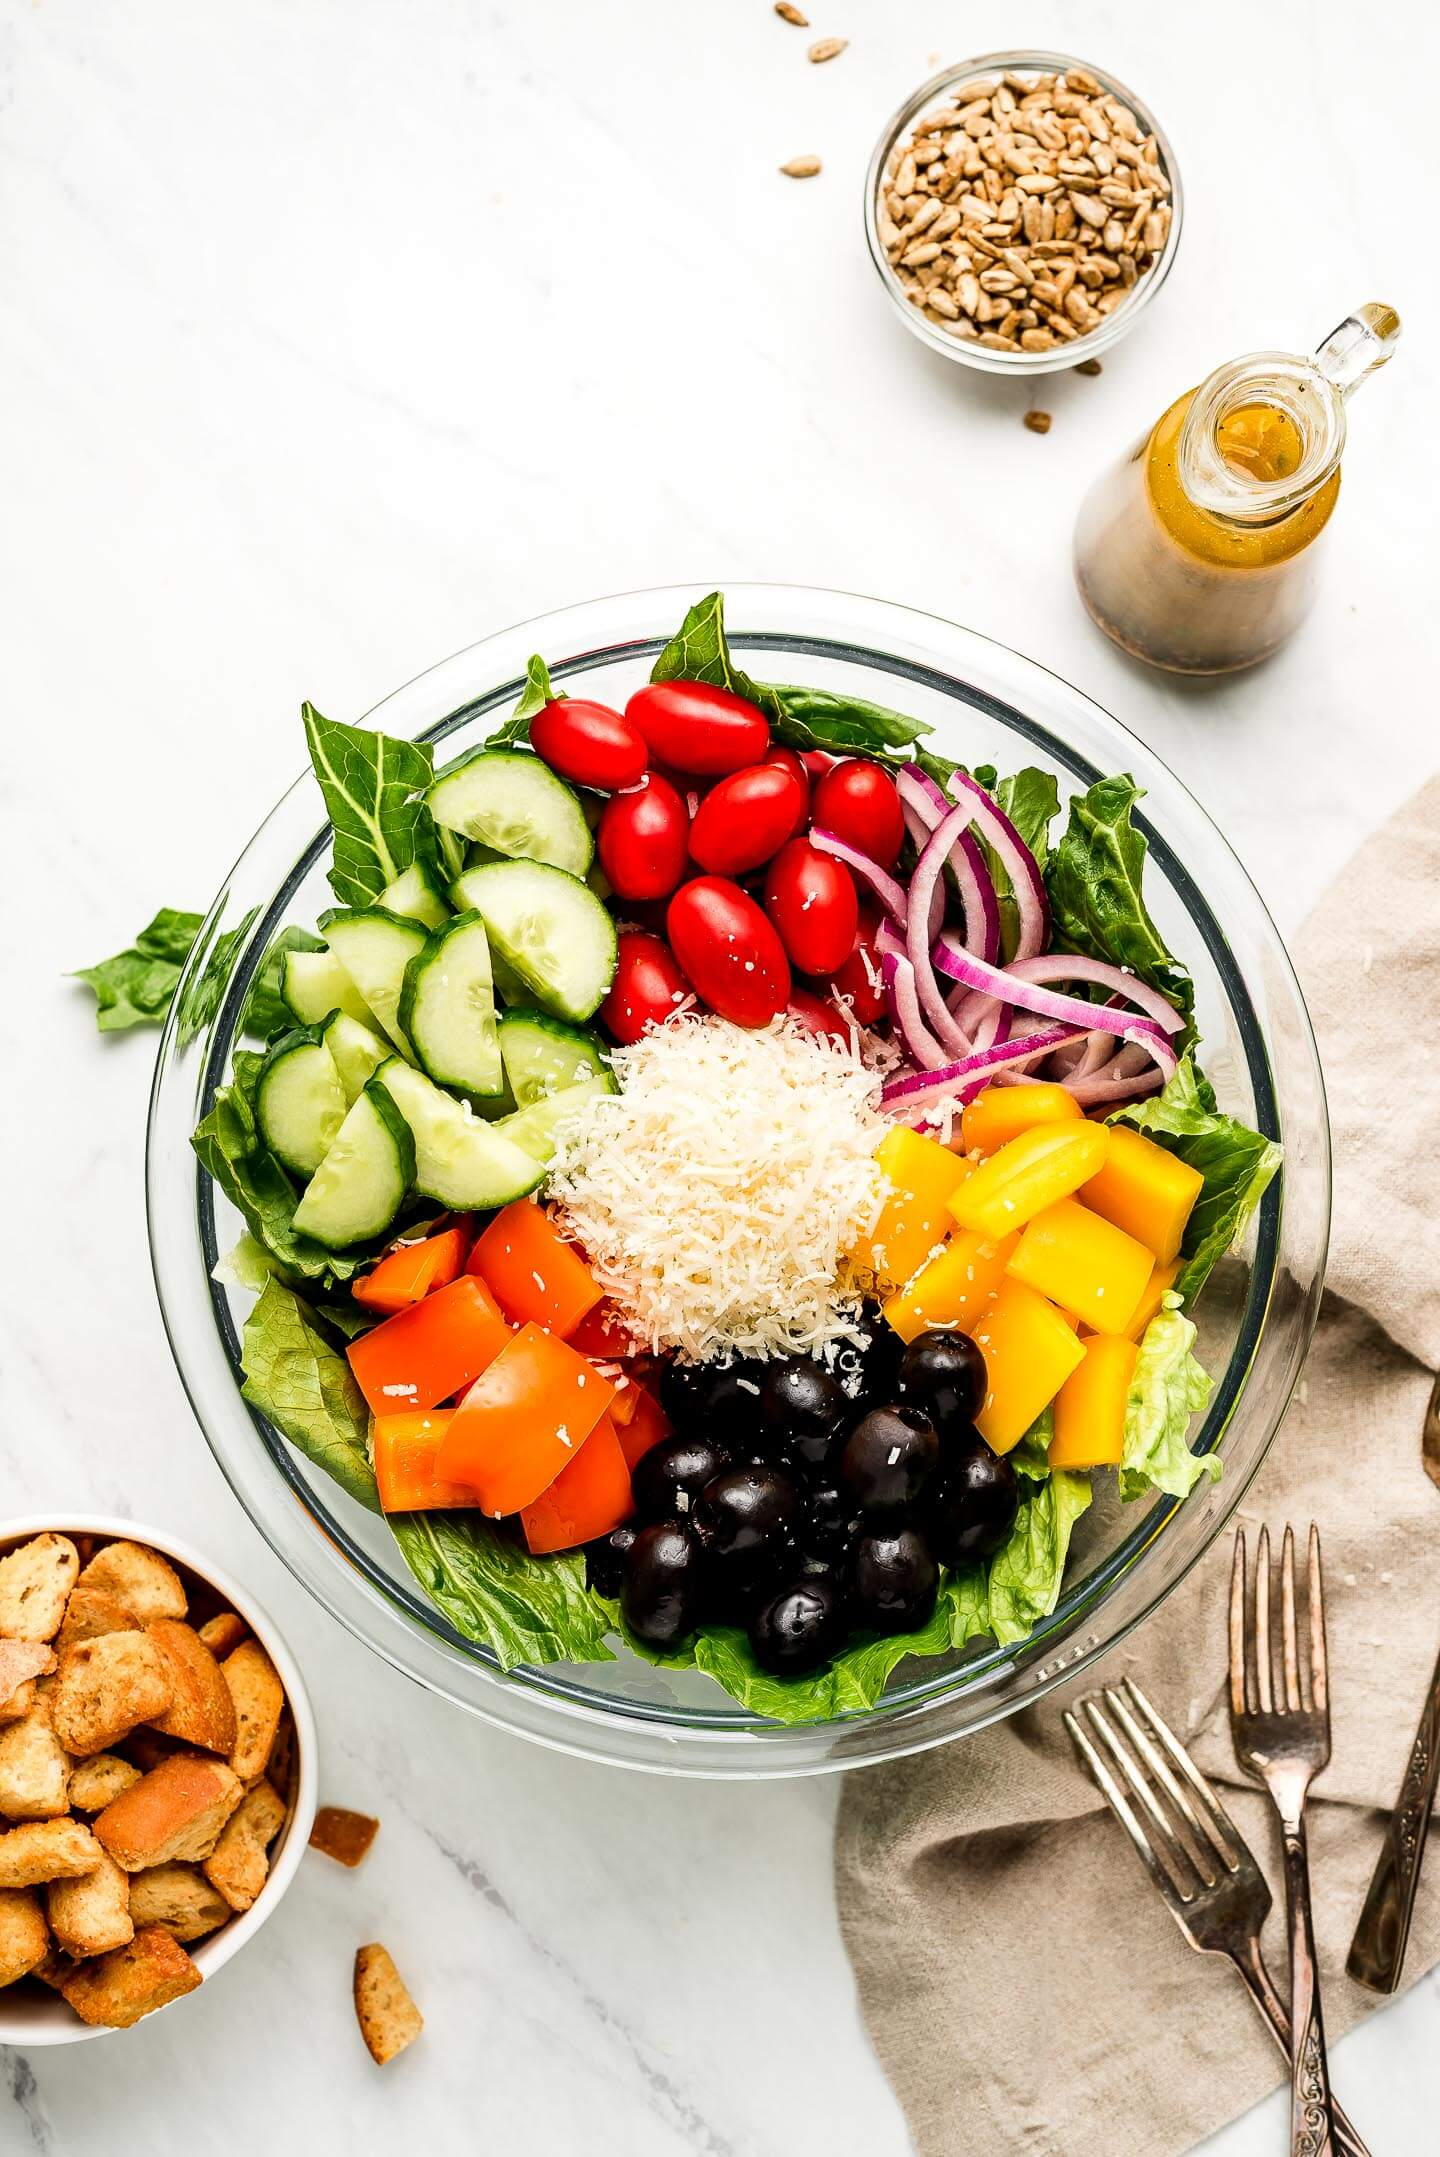 A large bowl of romaine lettuce with olives, cucumbers, peppers, tomatoes, onions, and parmesan cheese on top with bowls of sunflower seeds, croutons, and dressing.